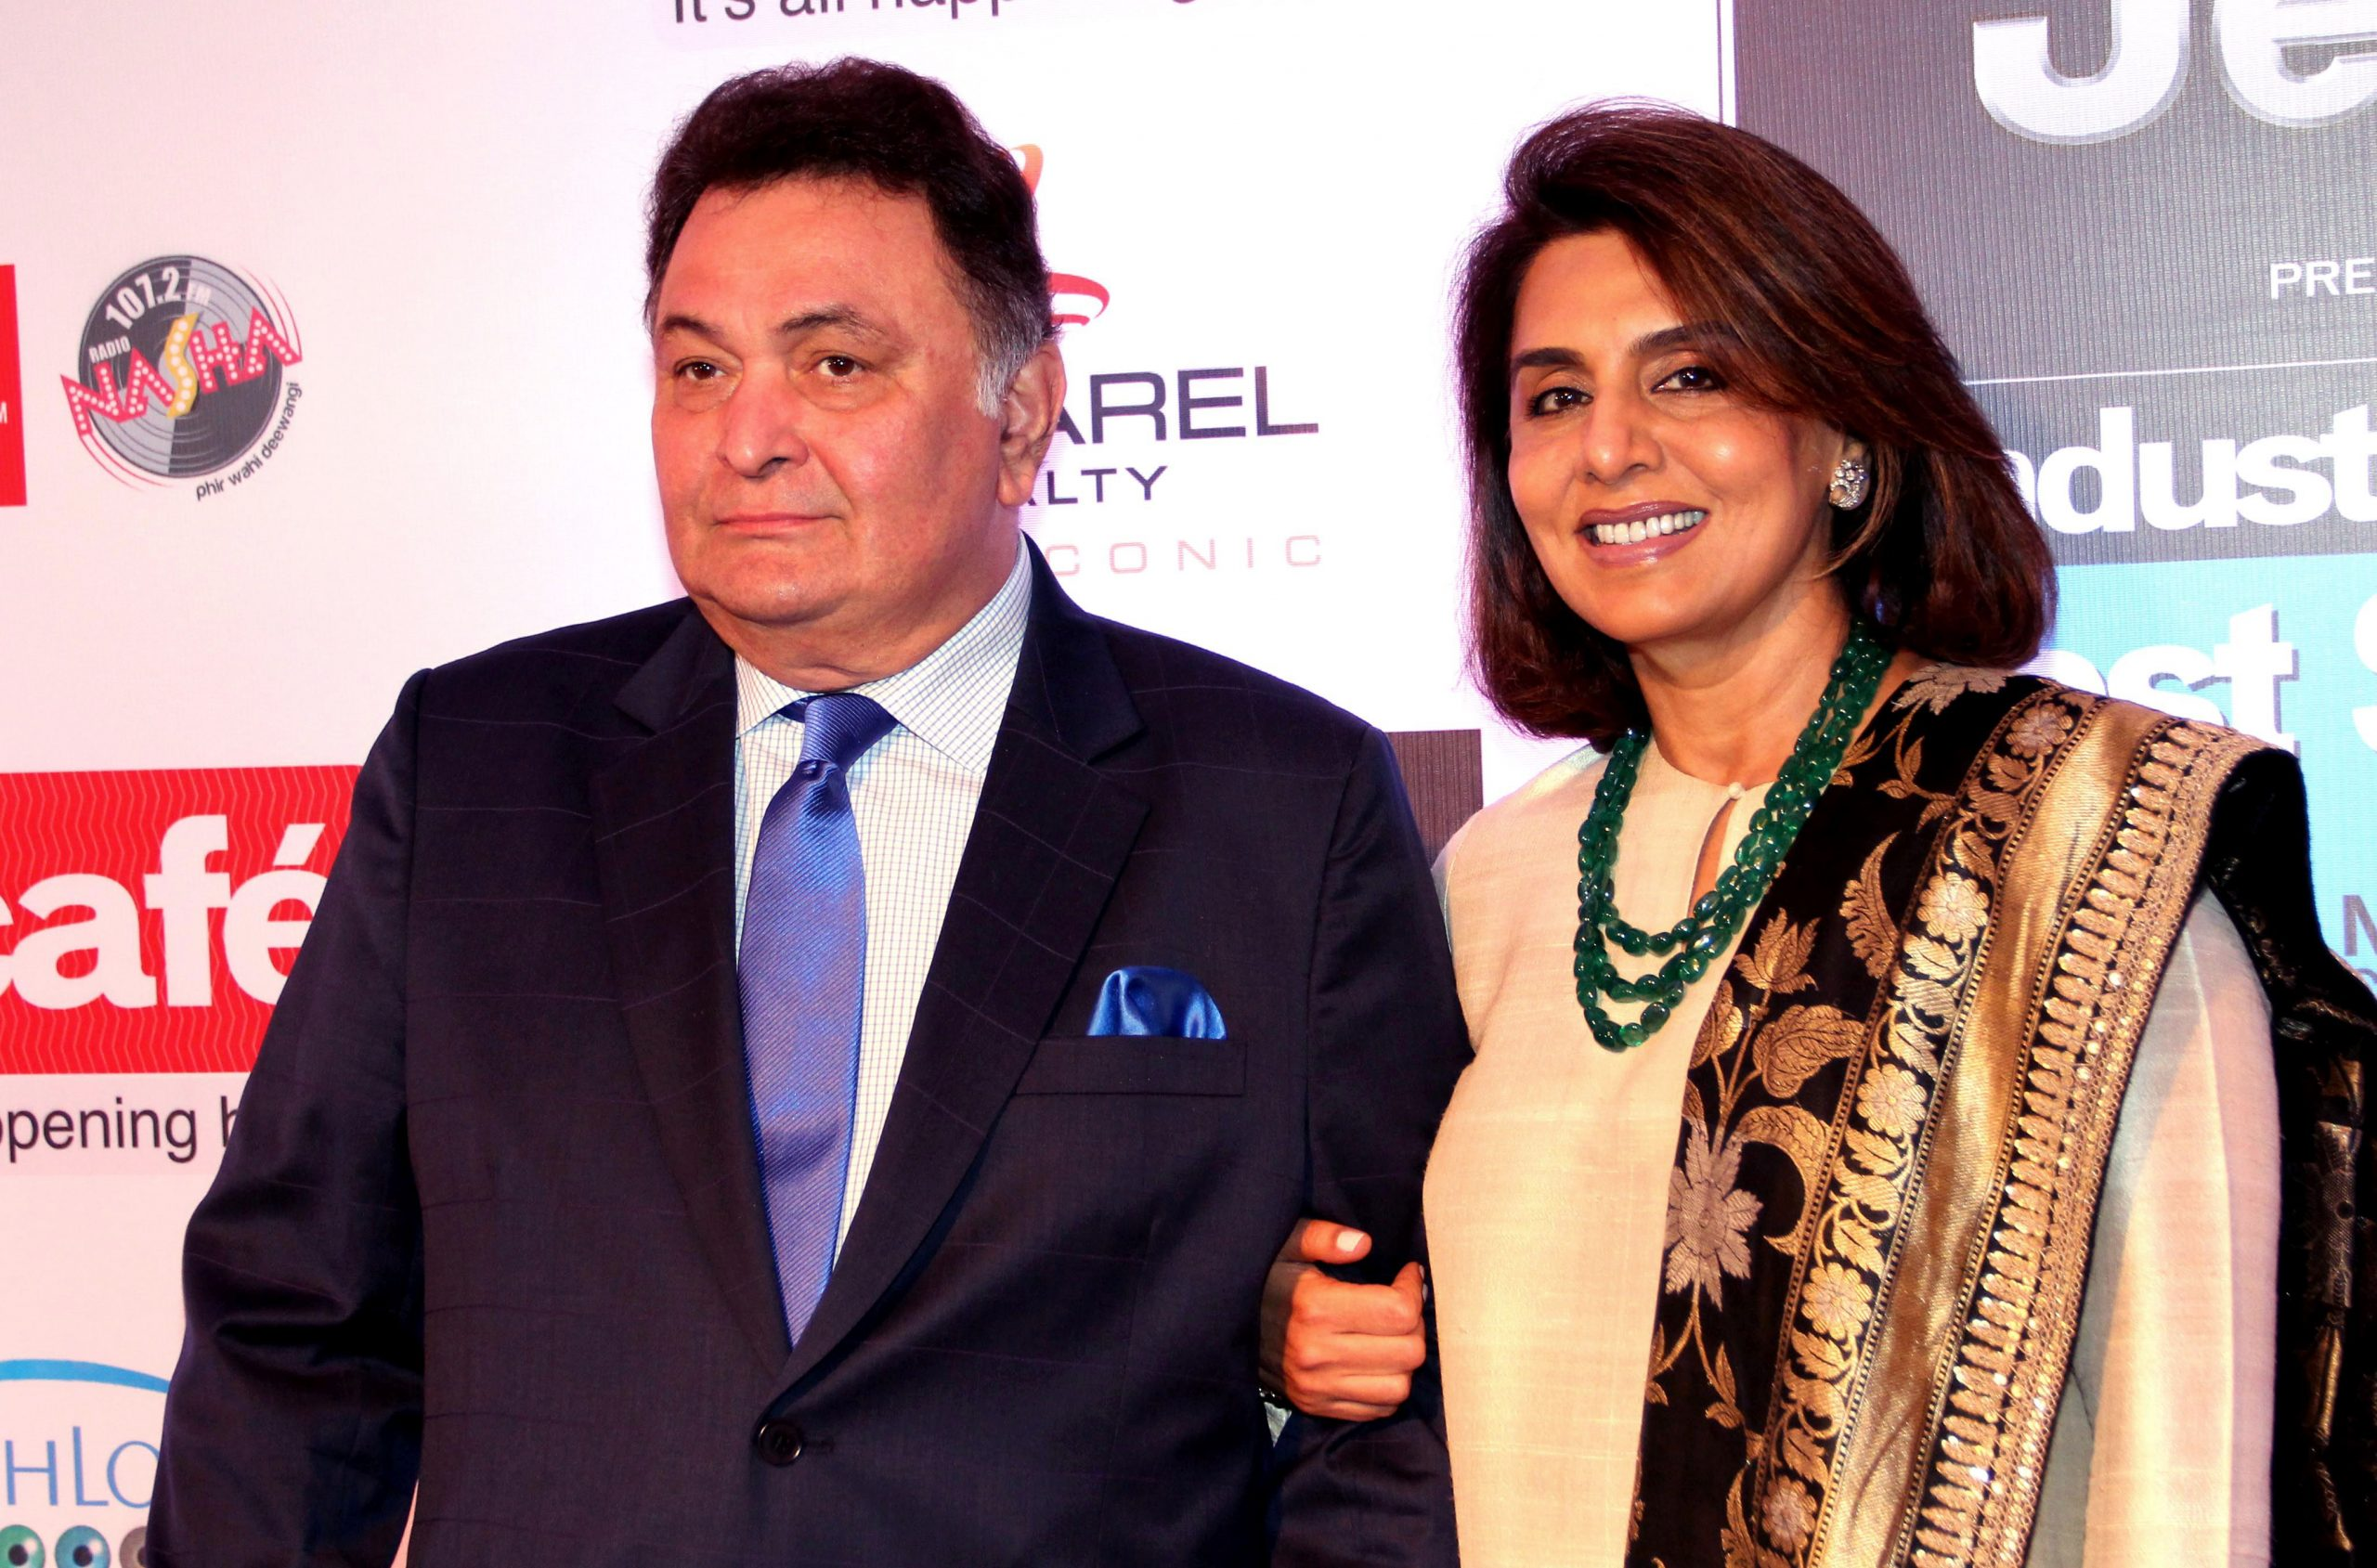 The late Rishi Kapoor (L) and actress Neetu Kapoor . (STR/AFP via Getty Images)